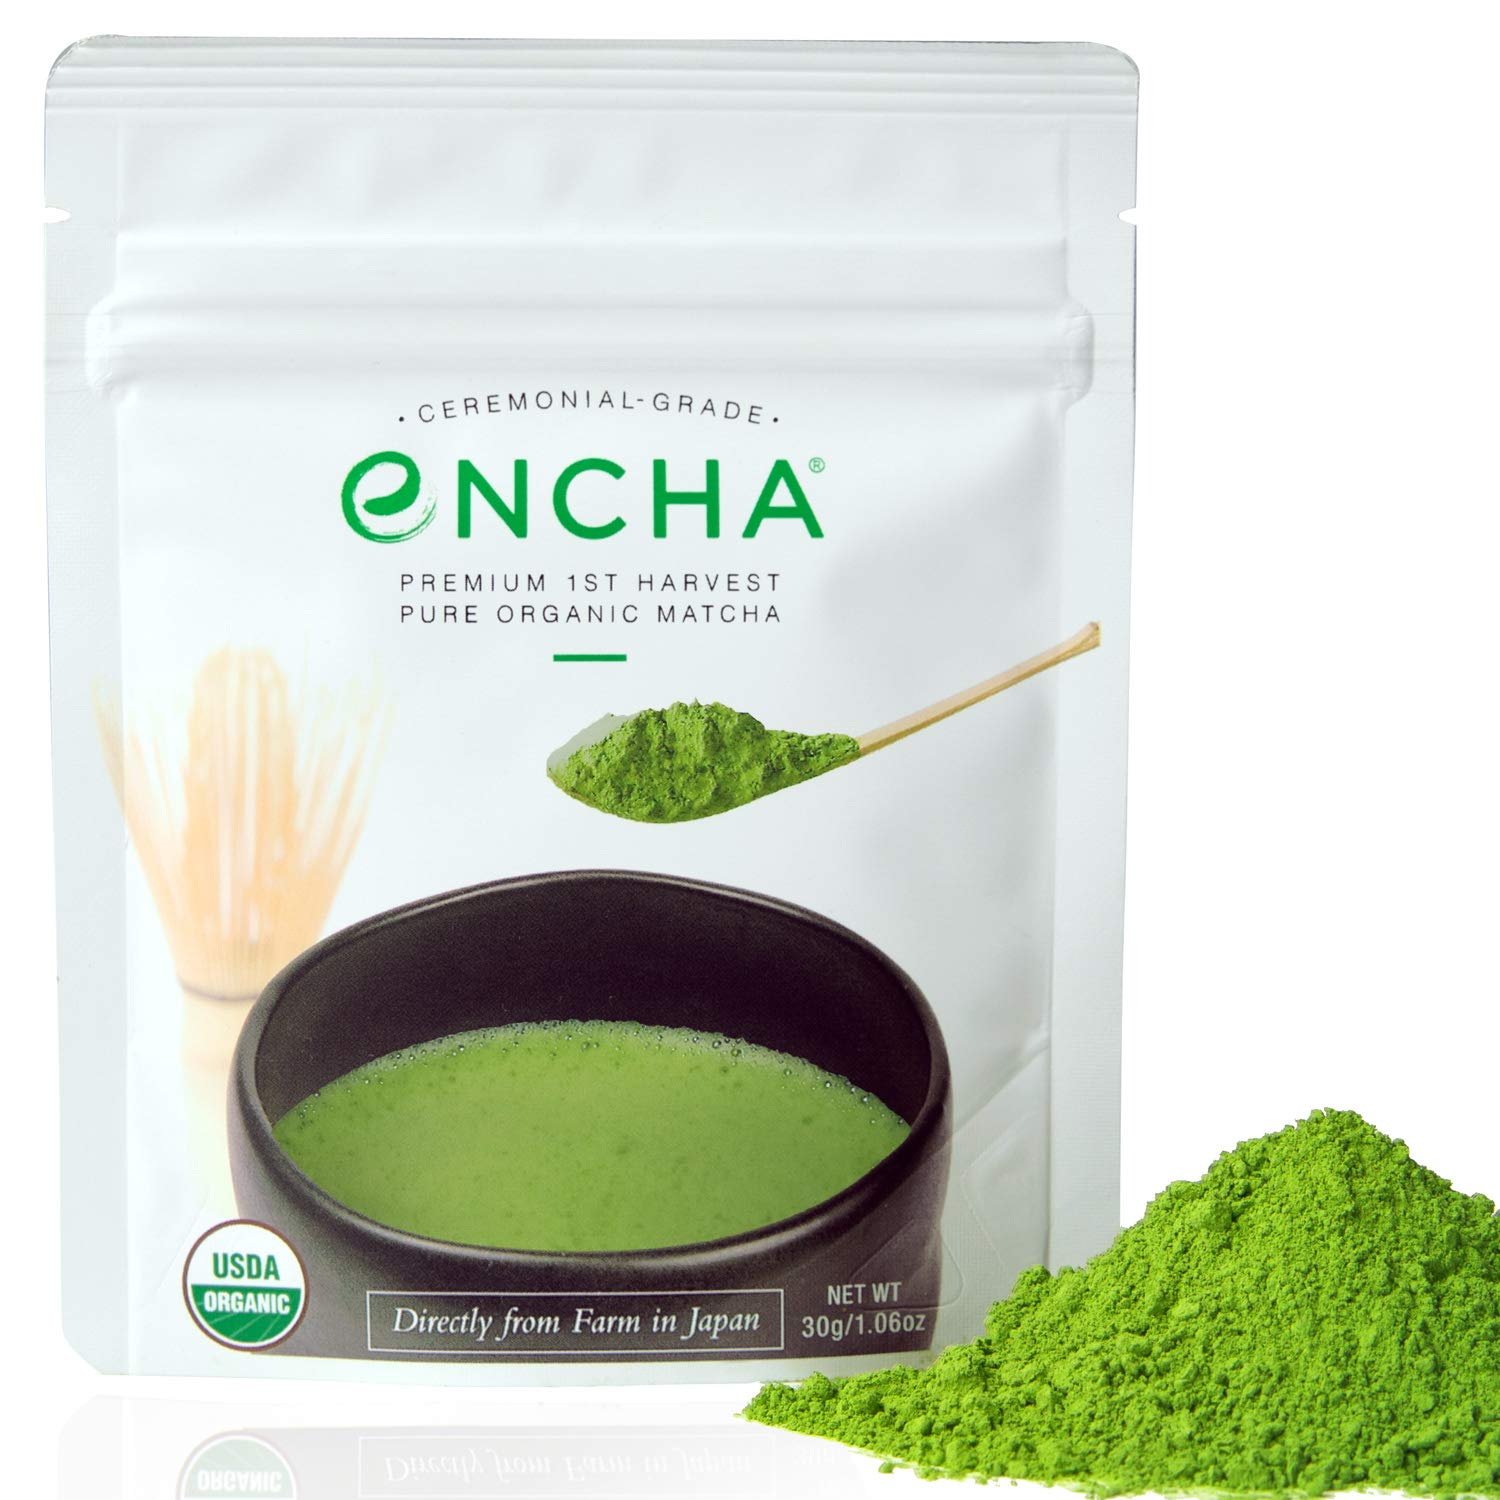 Encha Ceremonial Organic Matcha (USDA Organic Certificate and Antioxidant Content Listed, Premium First Harvest Directly from Farm in Uji, Japan, 30g/1.06oz in Resealable Pouch) by Encha